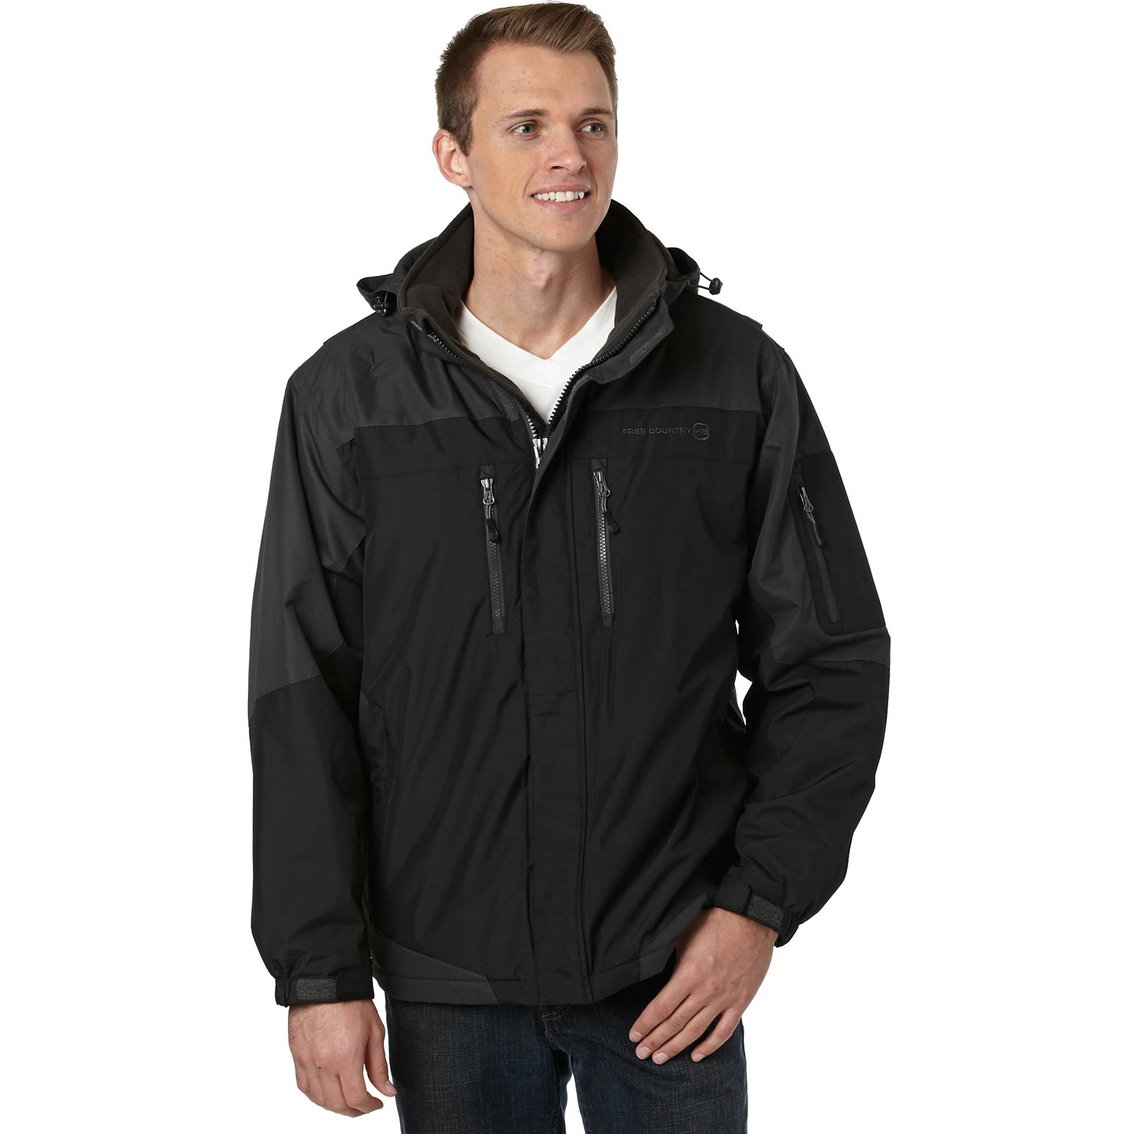 Free country men's colorblock midweight jacket